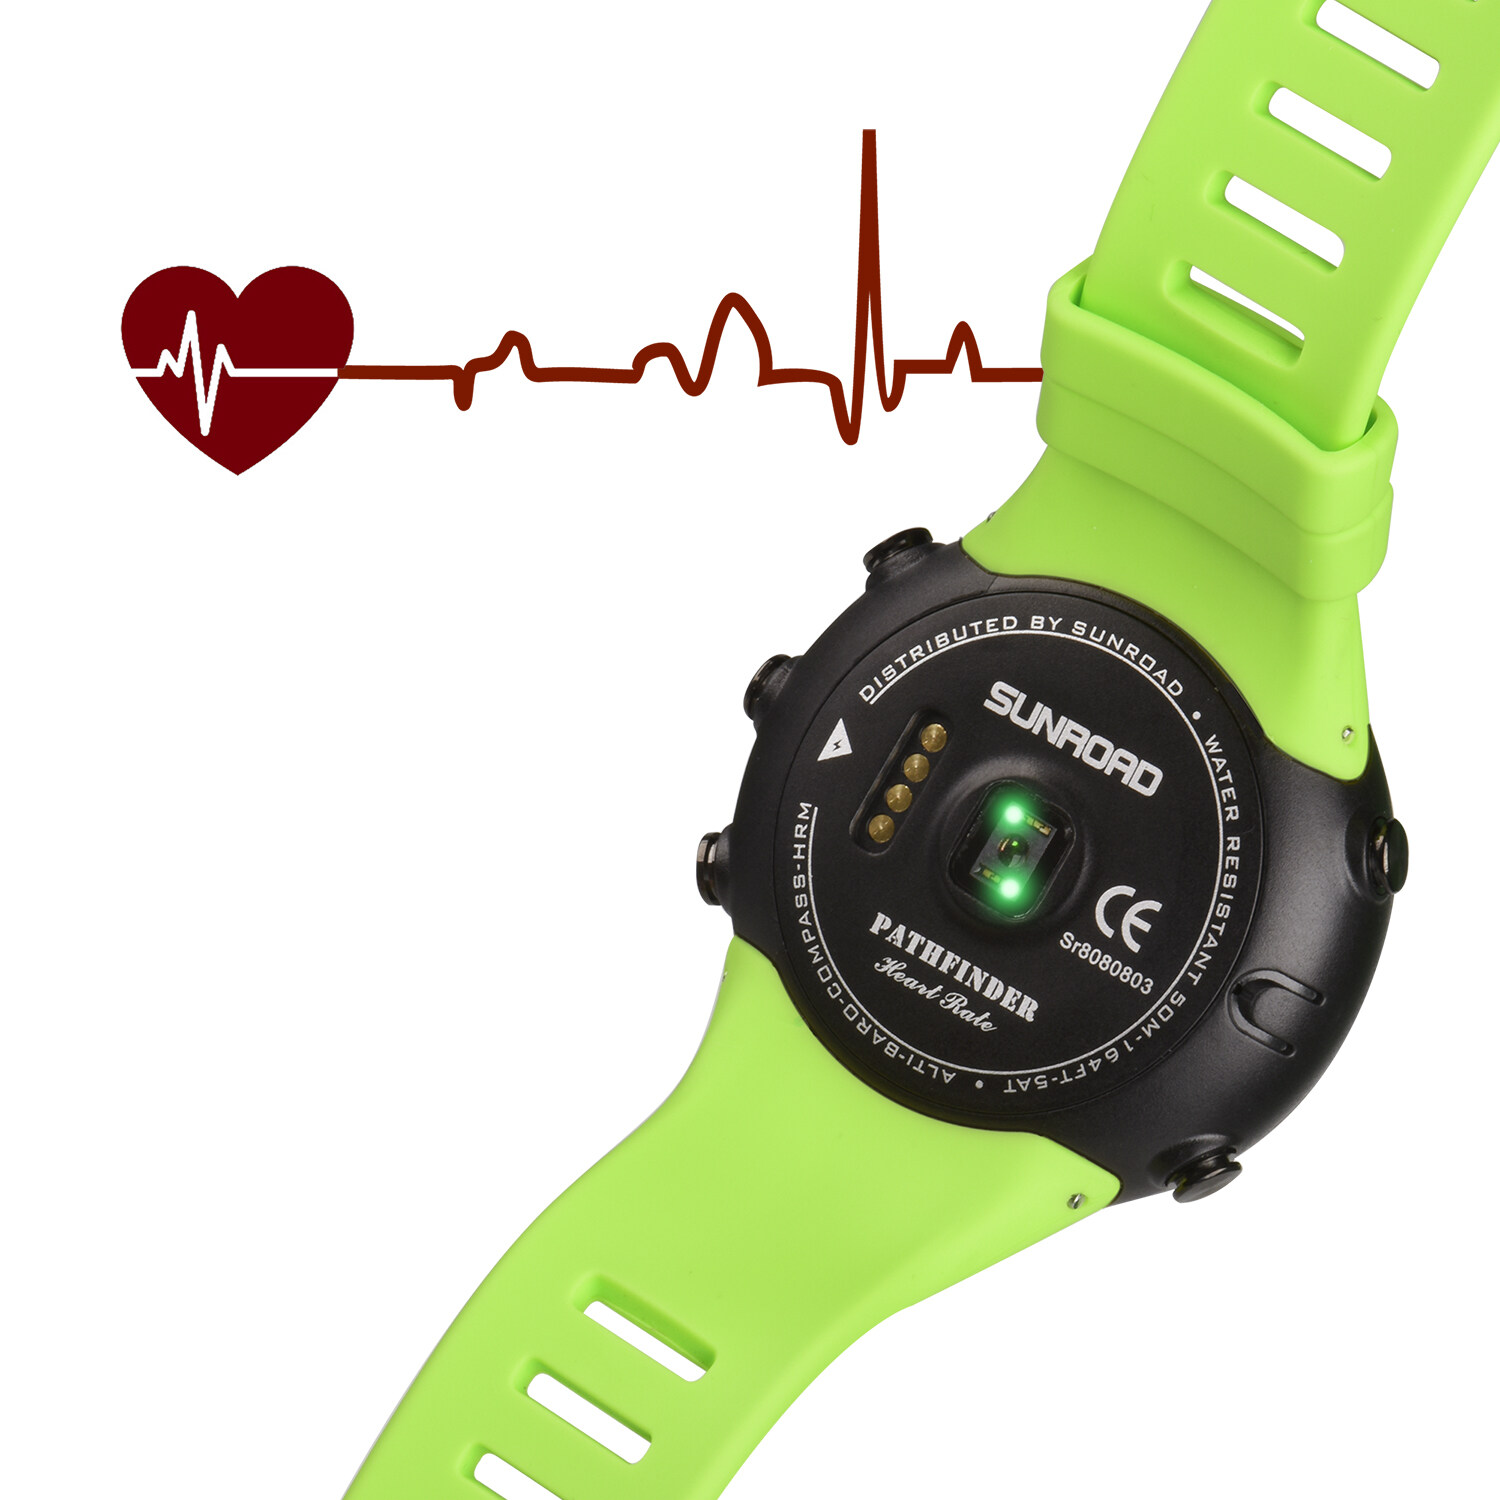 Sunroad heart rate outdoor sports watch with Pedometer, altimeter, climb data, hiking, camping, traveling watch waterproof 3